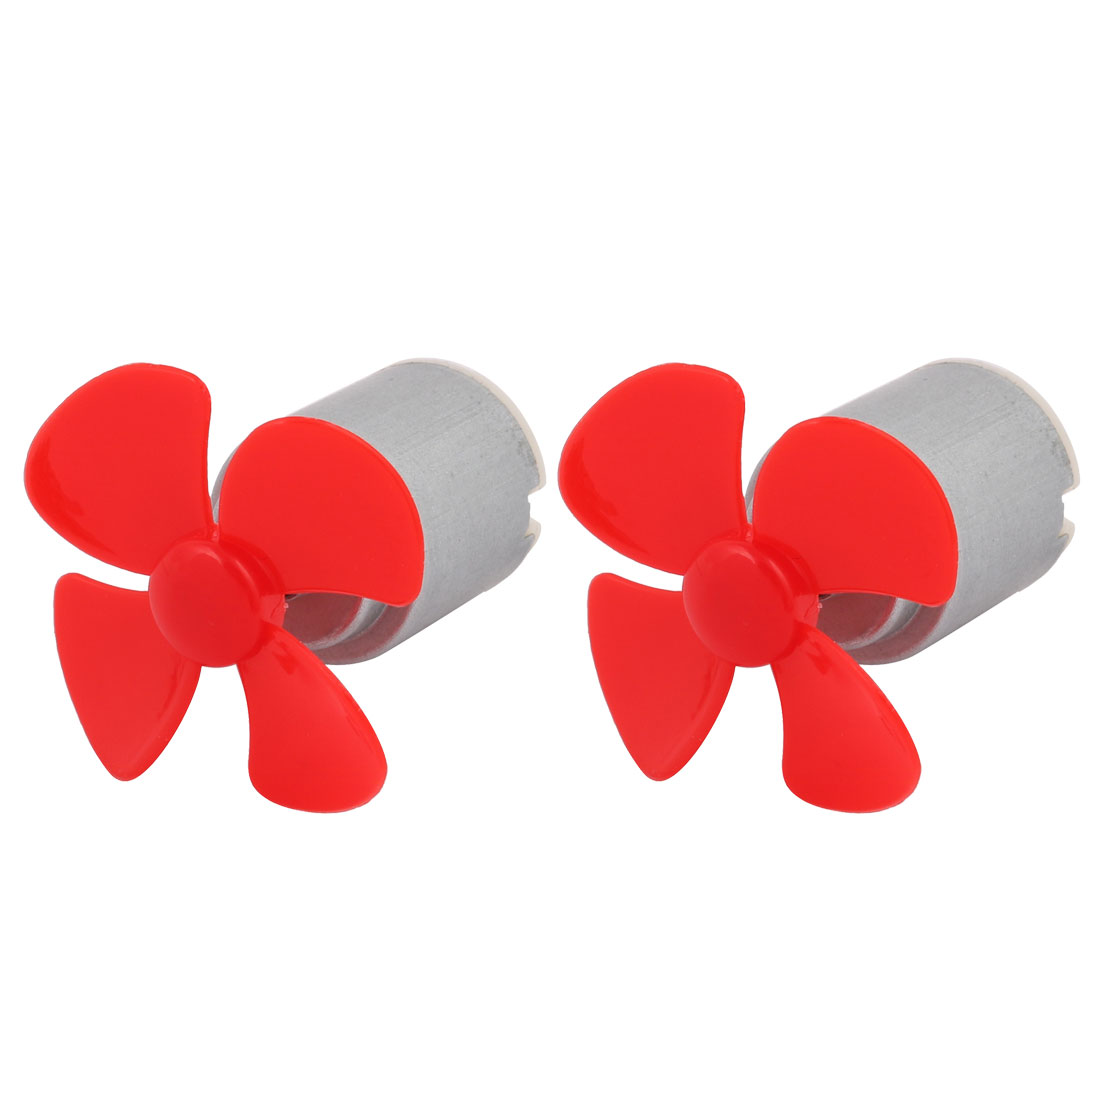 2pcs DC 3V 0.05A 12500RPM Red Strong Force Motor 4 Vanes 40mm Propeller for RC Aircraft